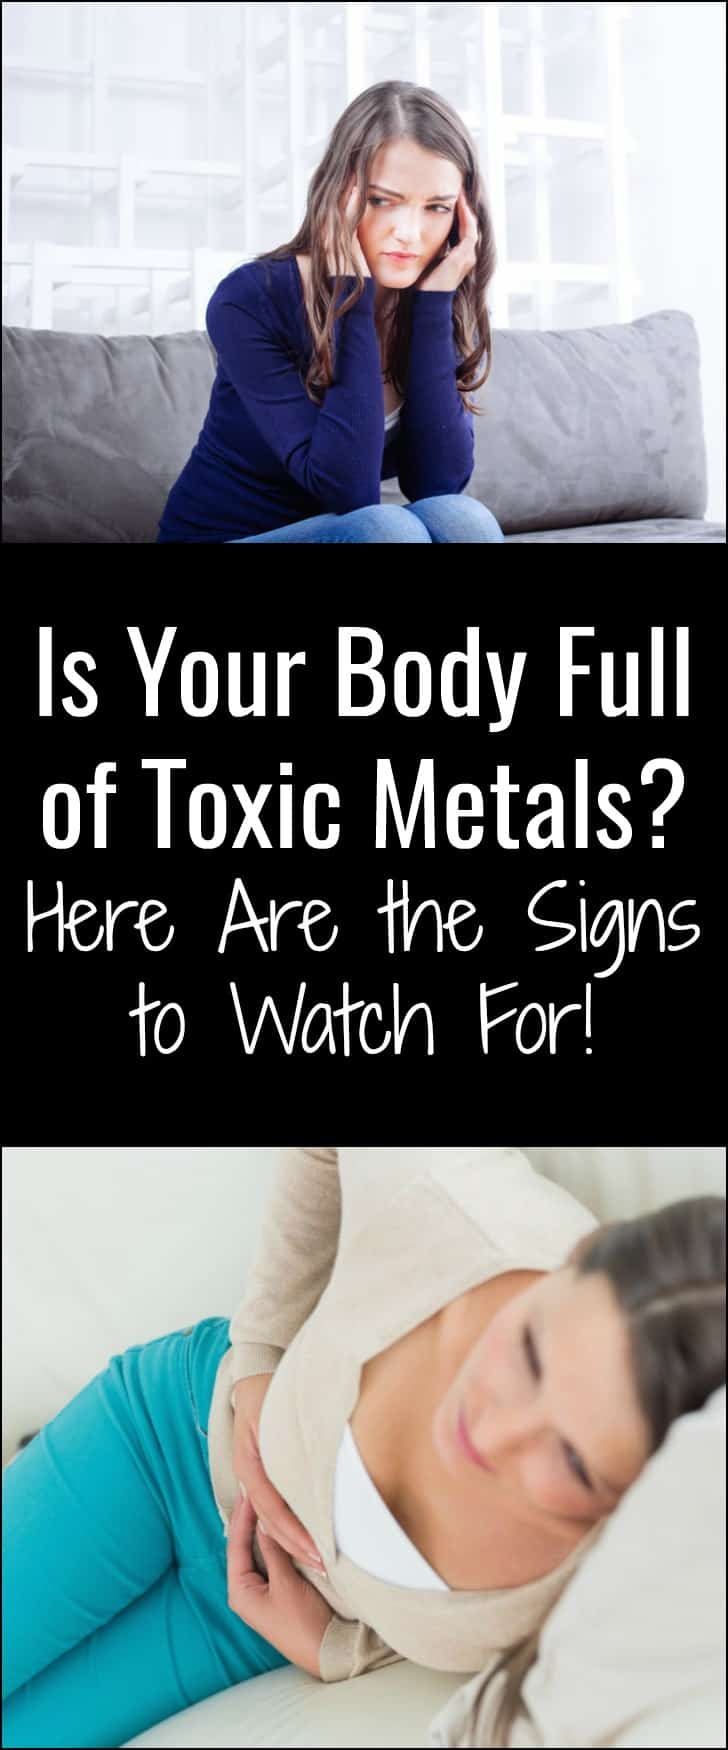 Is Your Body Full of Toxic Metals? Here Are the Signs to Watch For!